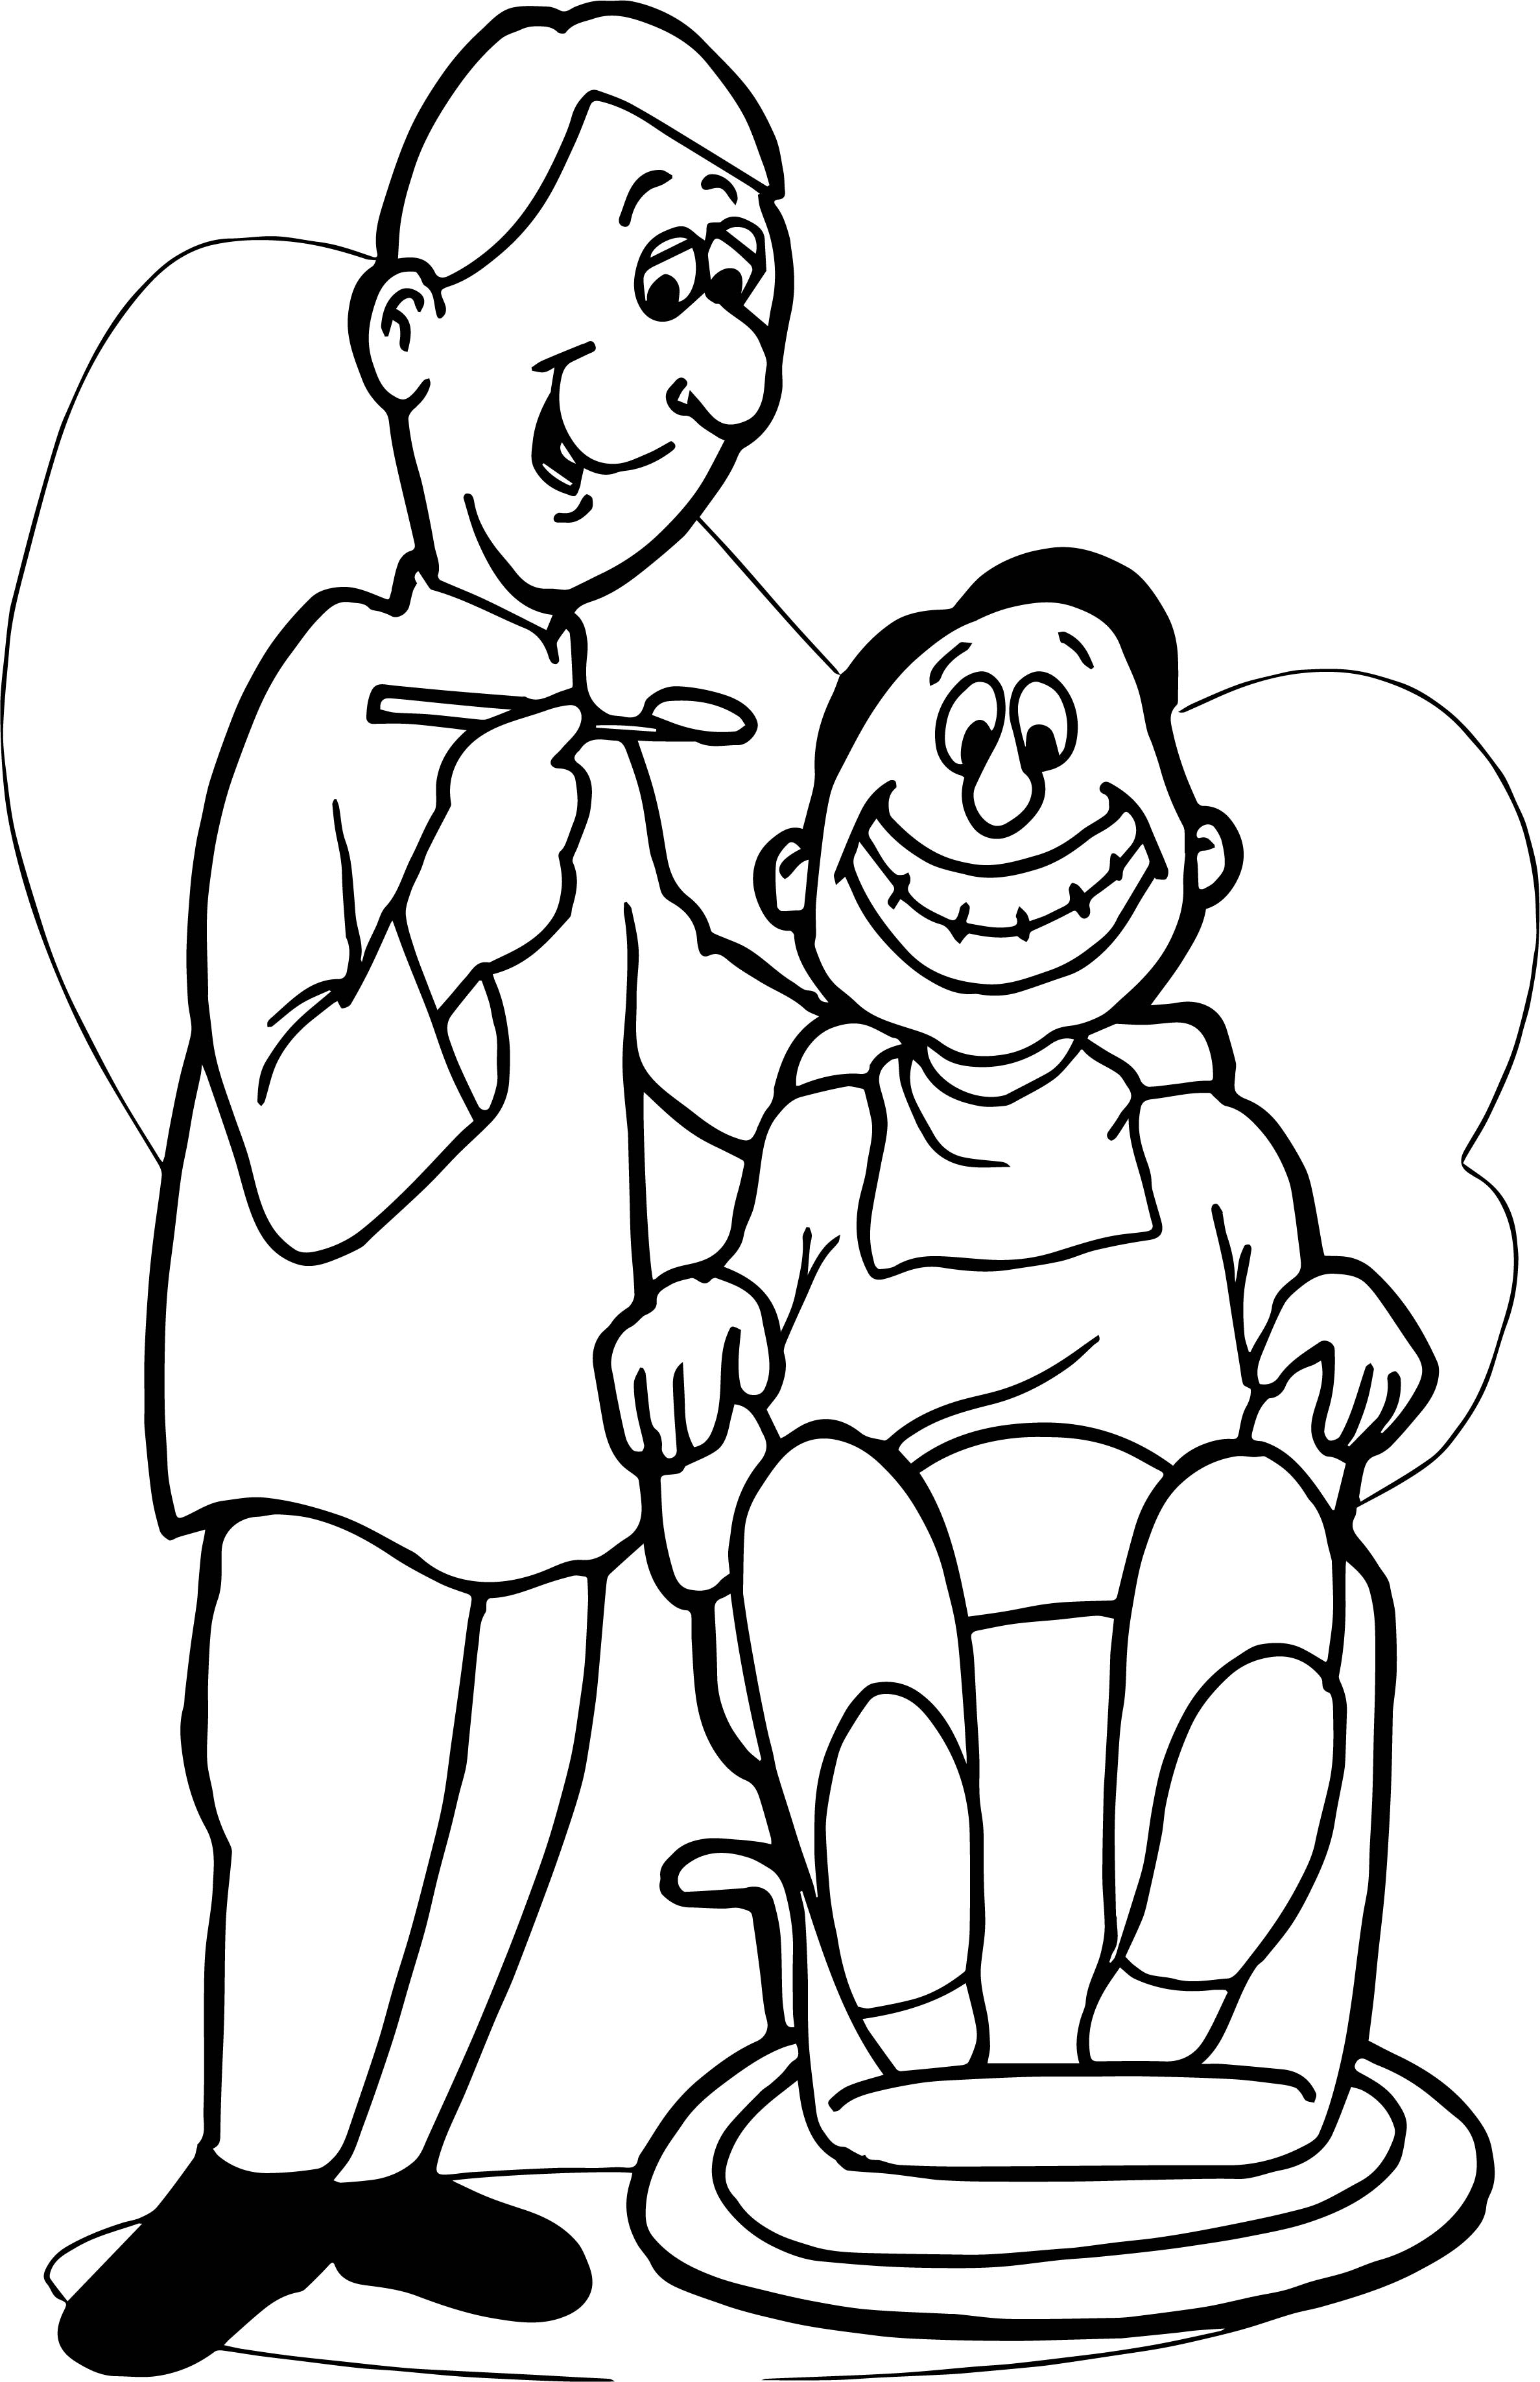 Fine Milkshake Coloring Pages Mold Ways to Use Coloring Pages Download Of Coloring Pages tooth Coloring Pages Unique Happy Brush Dental Page Gallery